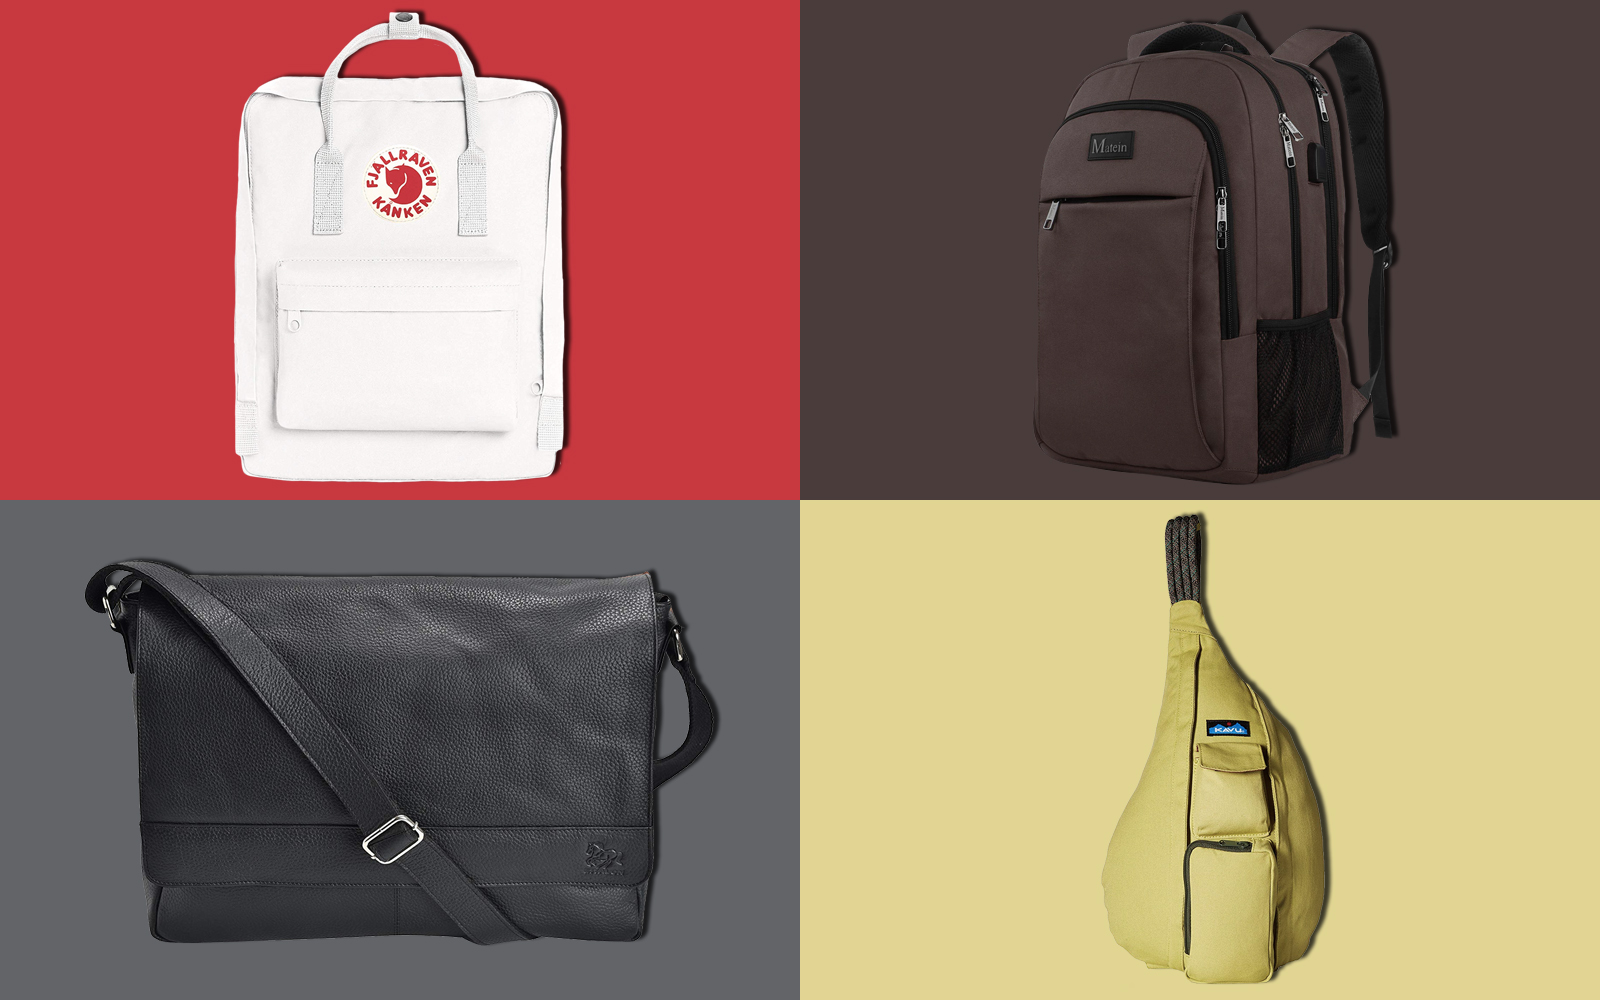 The Most Wished-for Travel Bags on Amazon